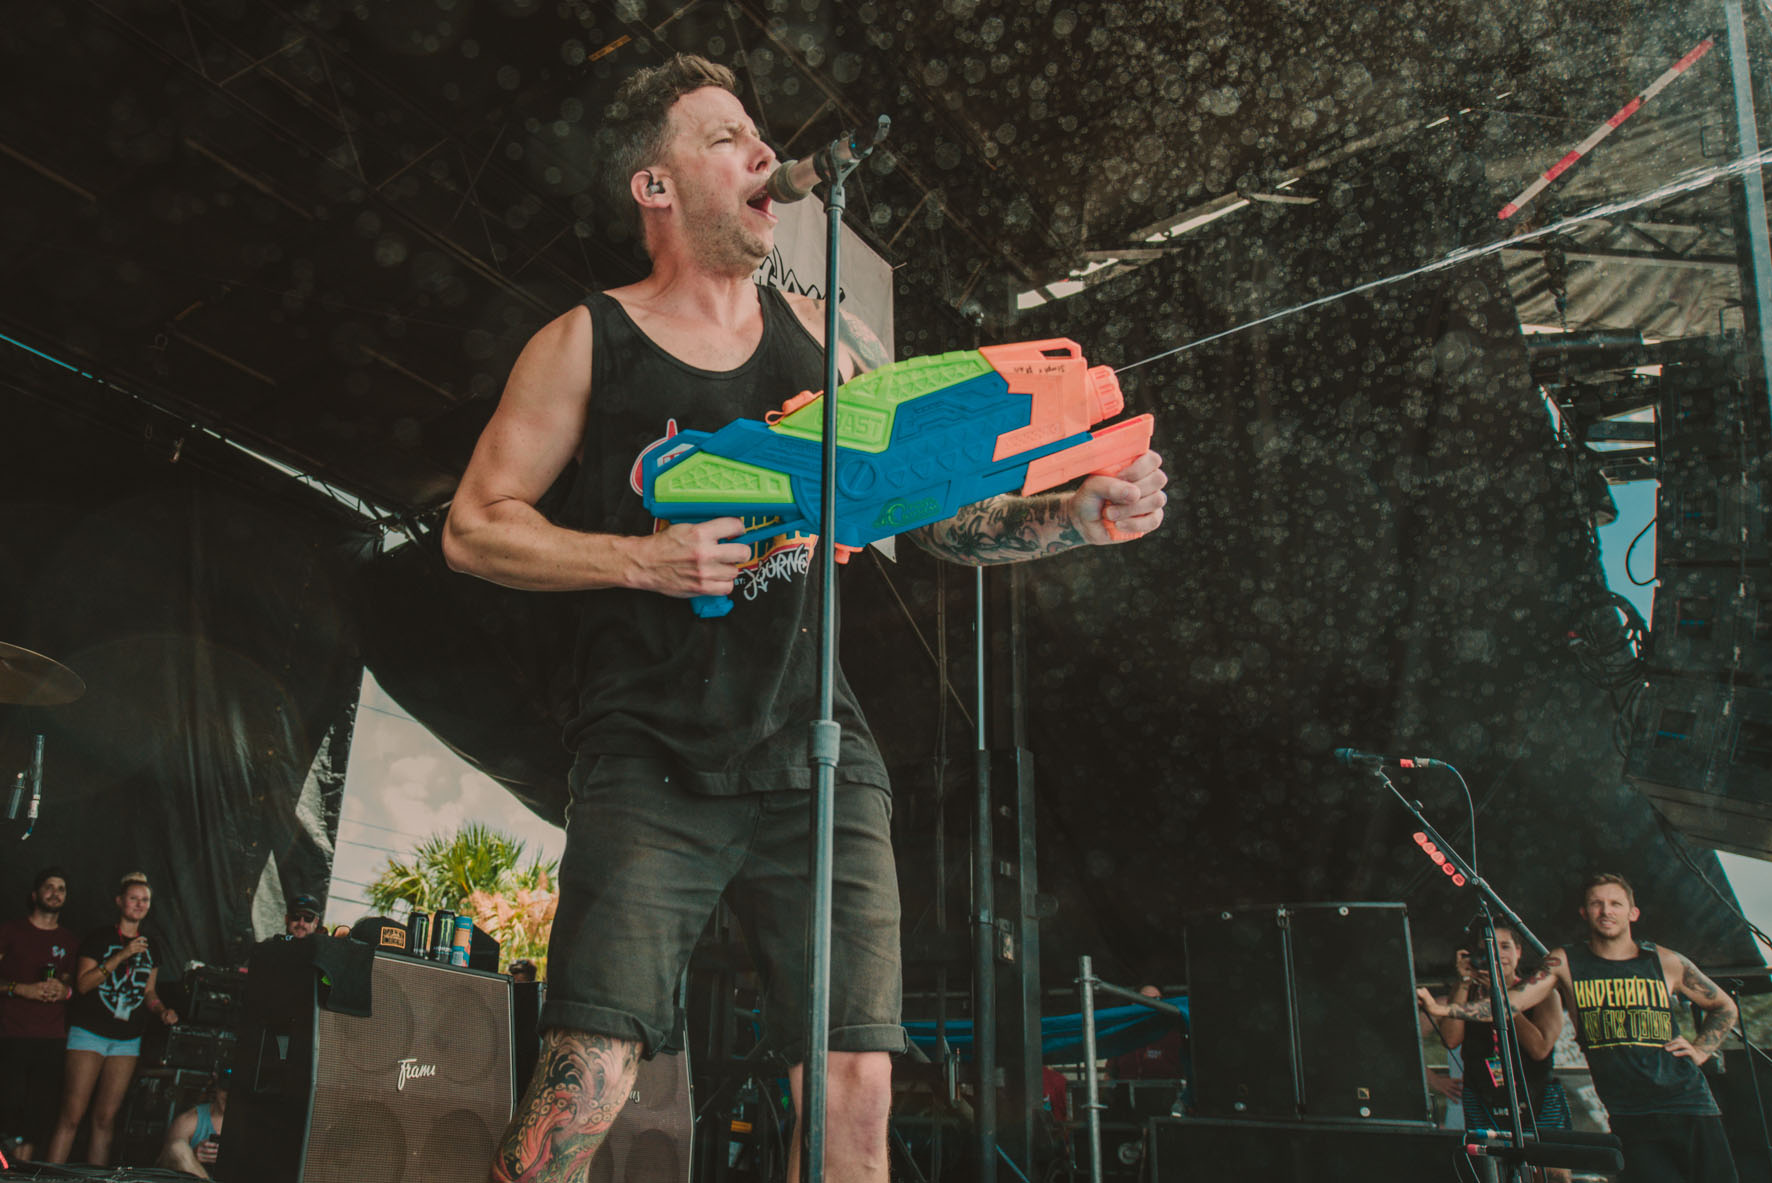 simple plan pierre bouvier crowd warped tour band concert rock photo photography image